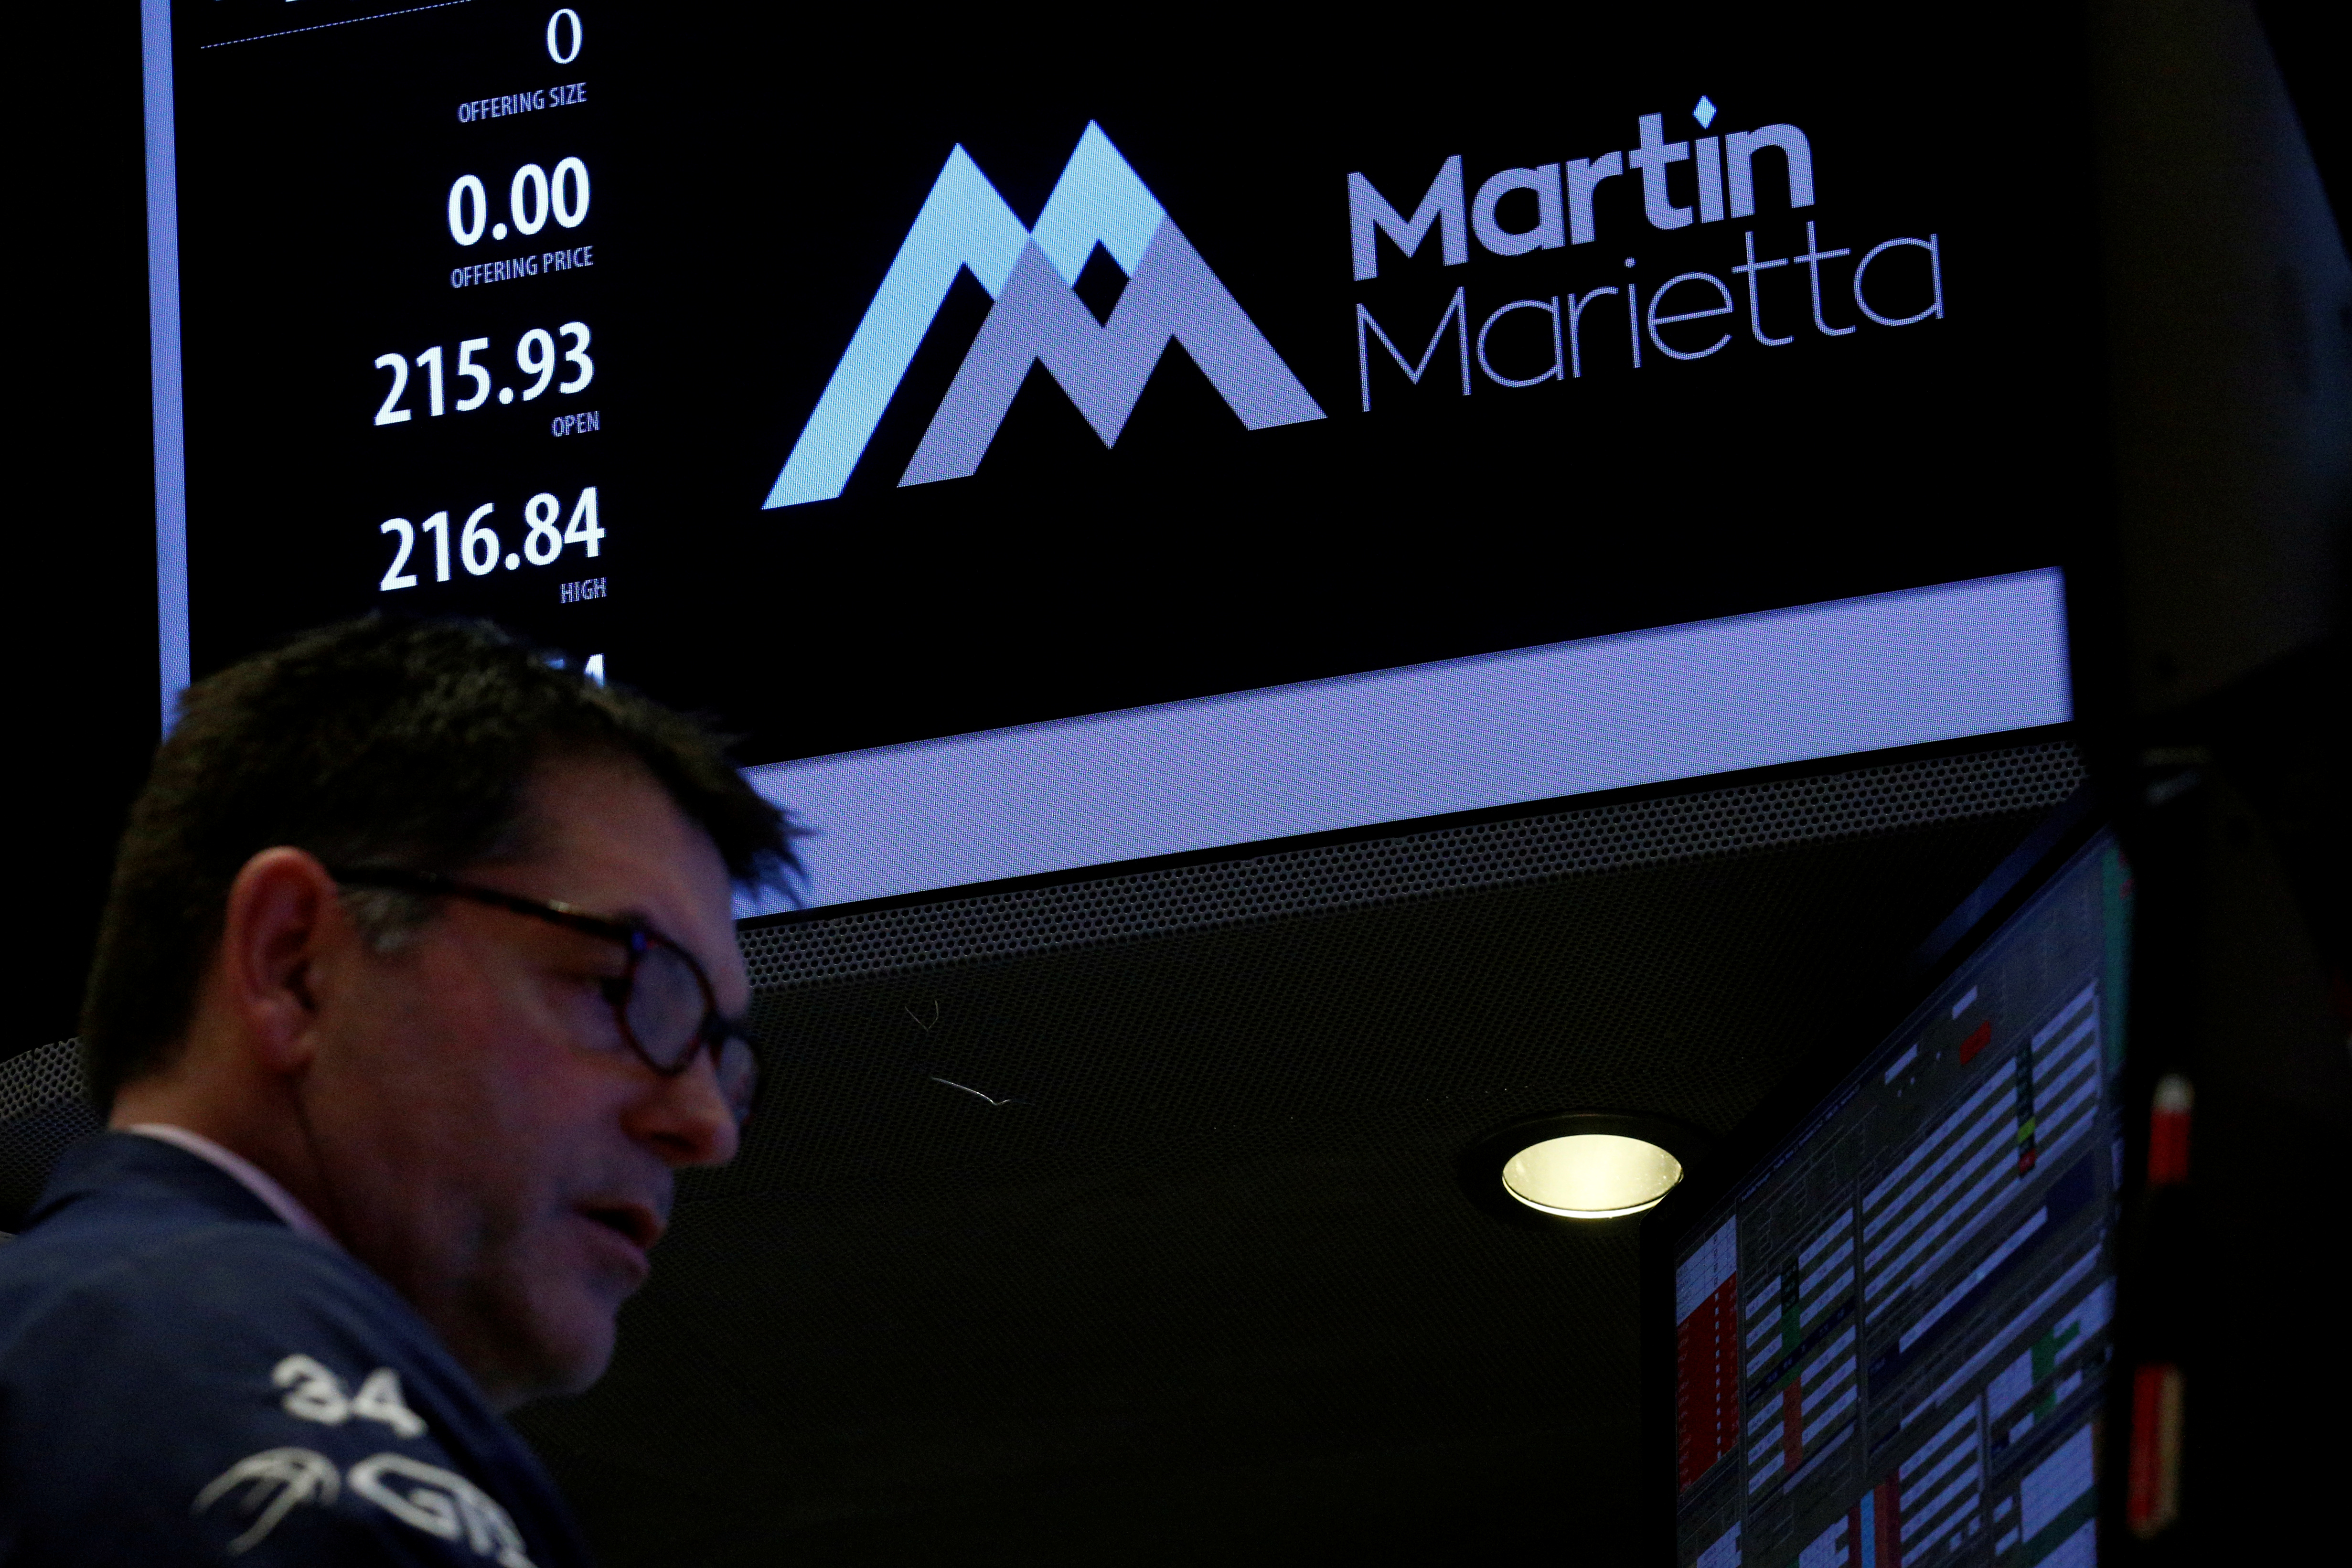 A specialist trader works at the post where Martin Marietta Materials is traded on the floor of the New York Stock Exchange (NYSE) in New York, U.S., March 6, 2017. REUTERS/Brendan McDermid